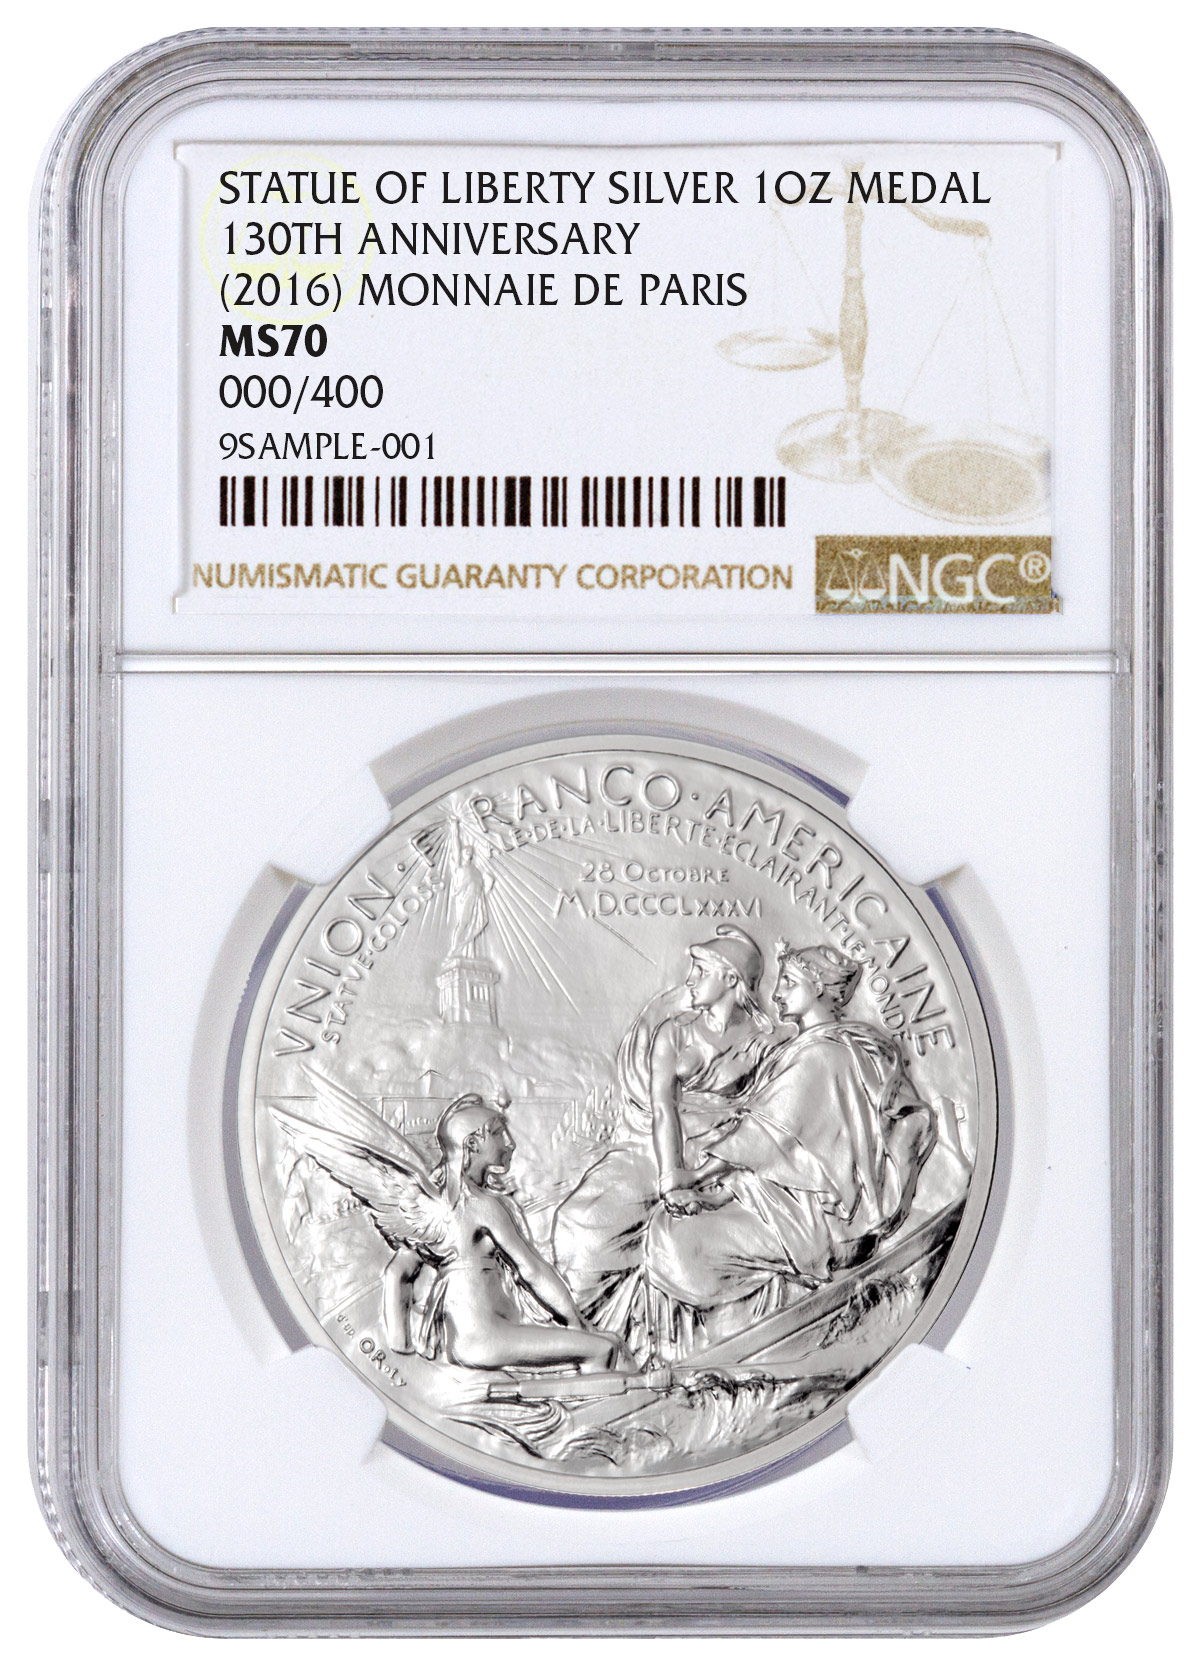 2016 France Statue of Liberty 130th Anniversary Commemorative 1 oz Silver Medal NGC MS70